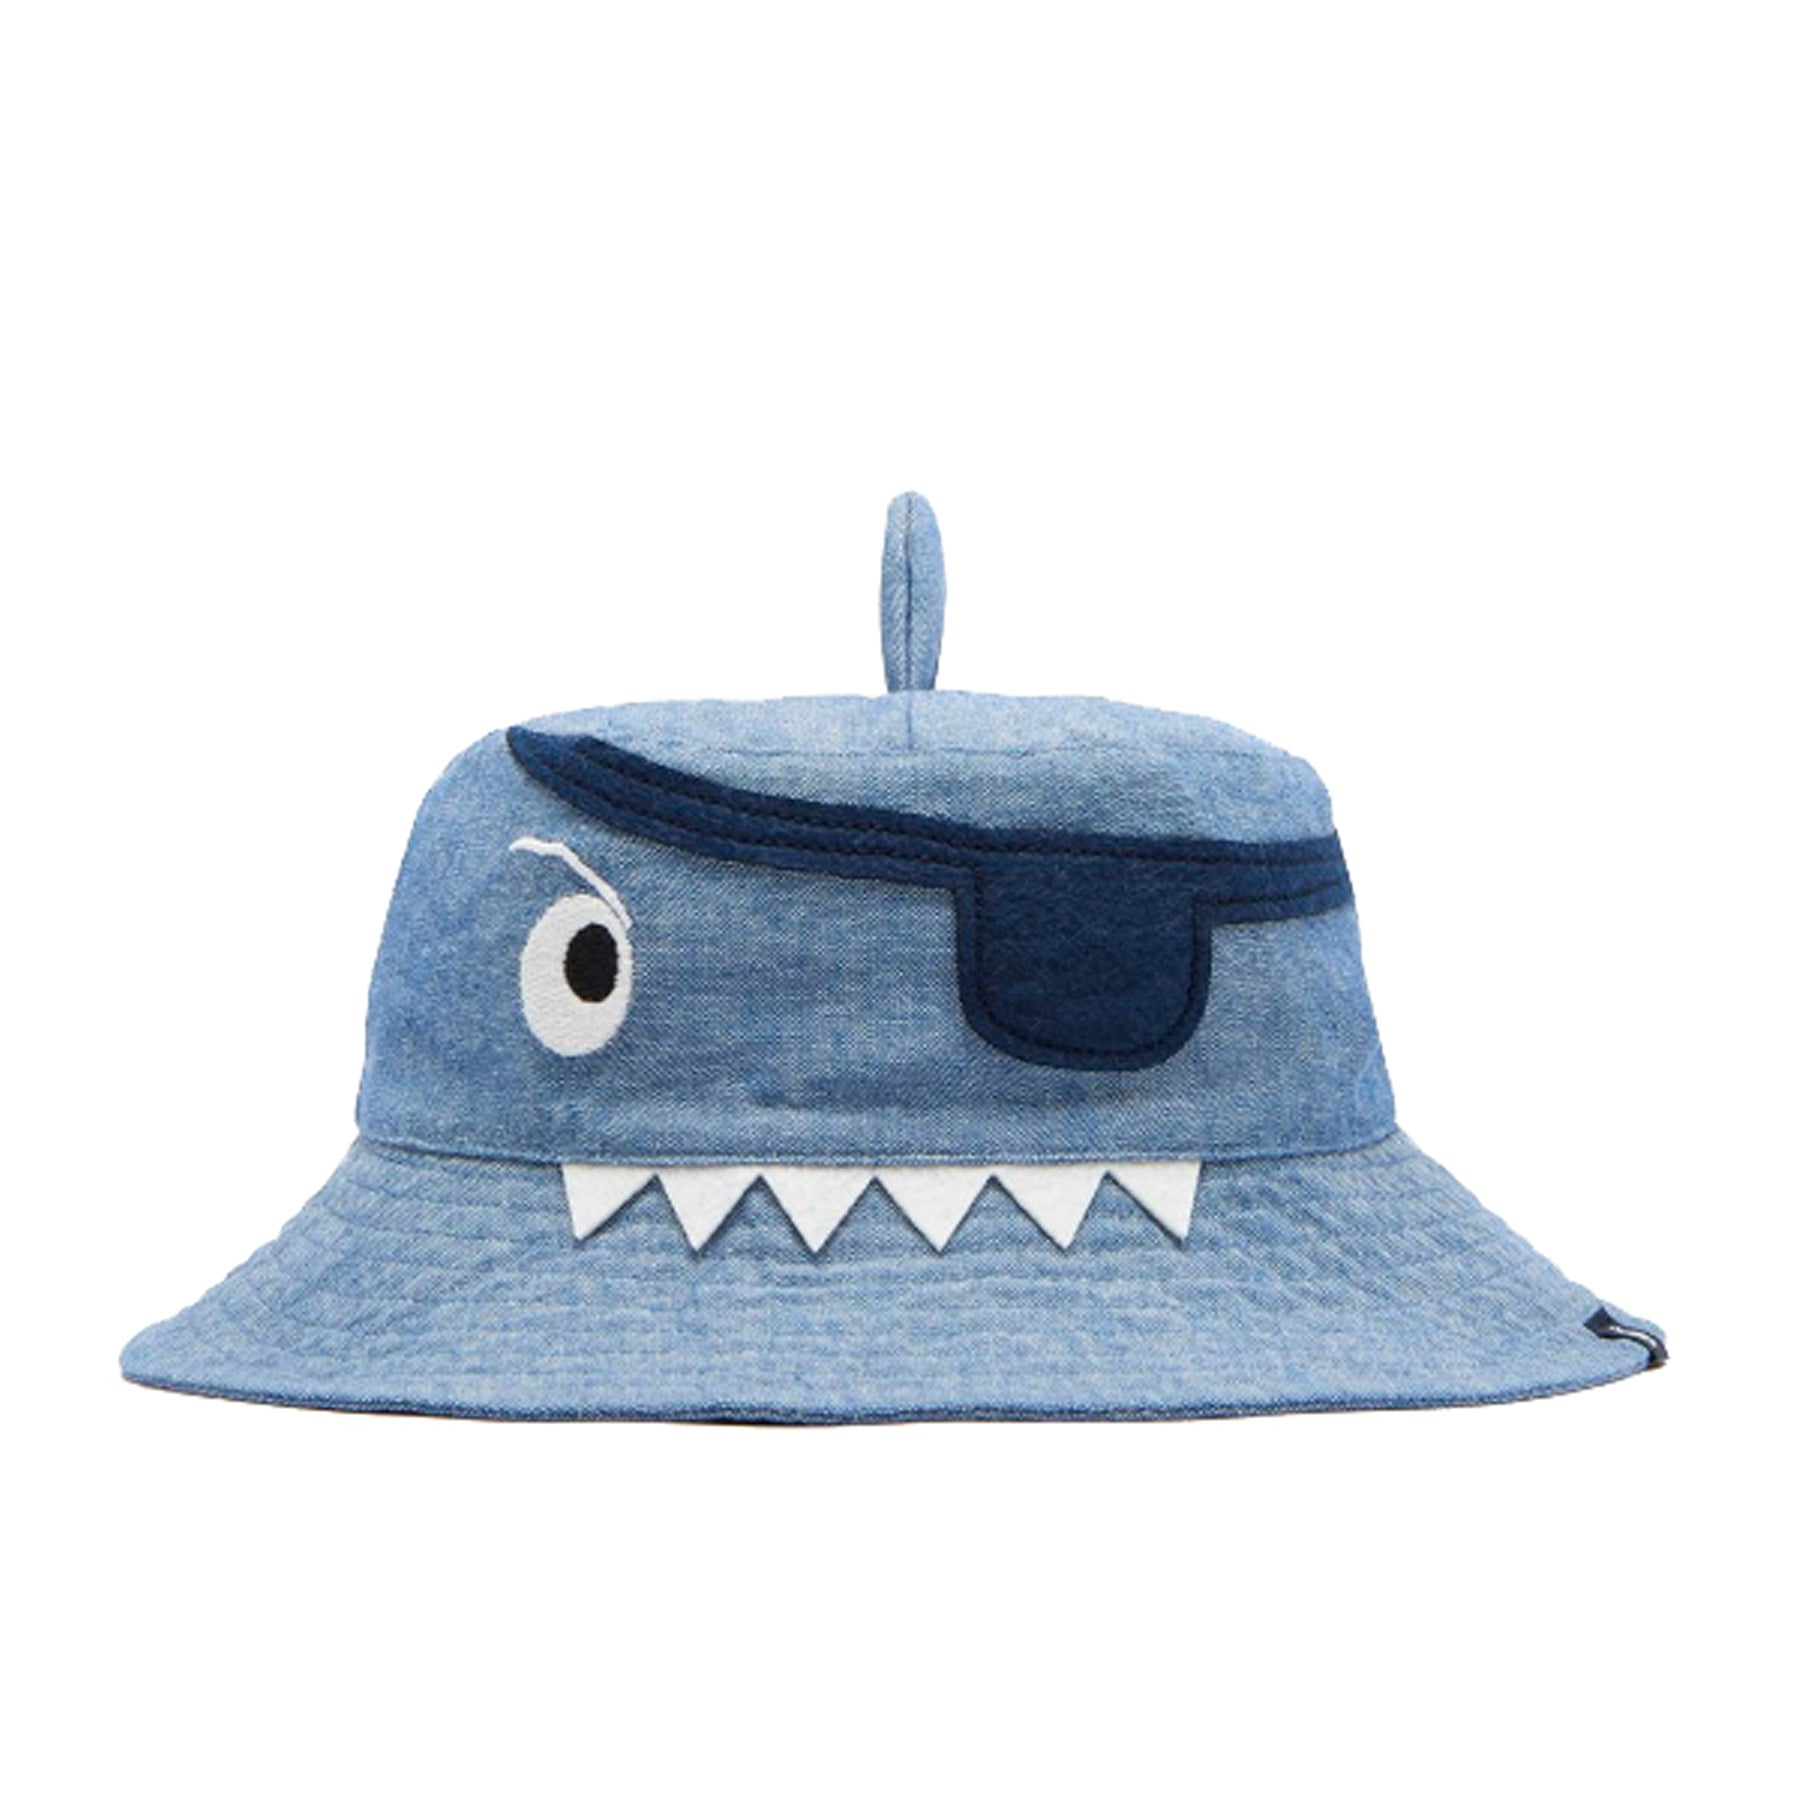 Sombrero Boys Joules Hatattack - Navy Pirate Shark